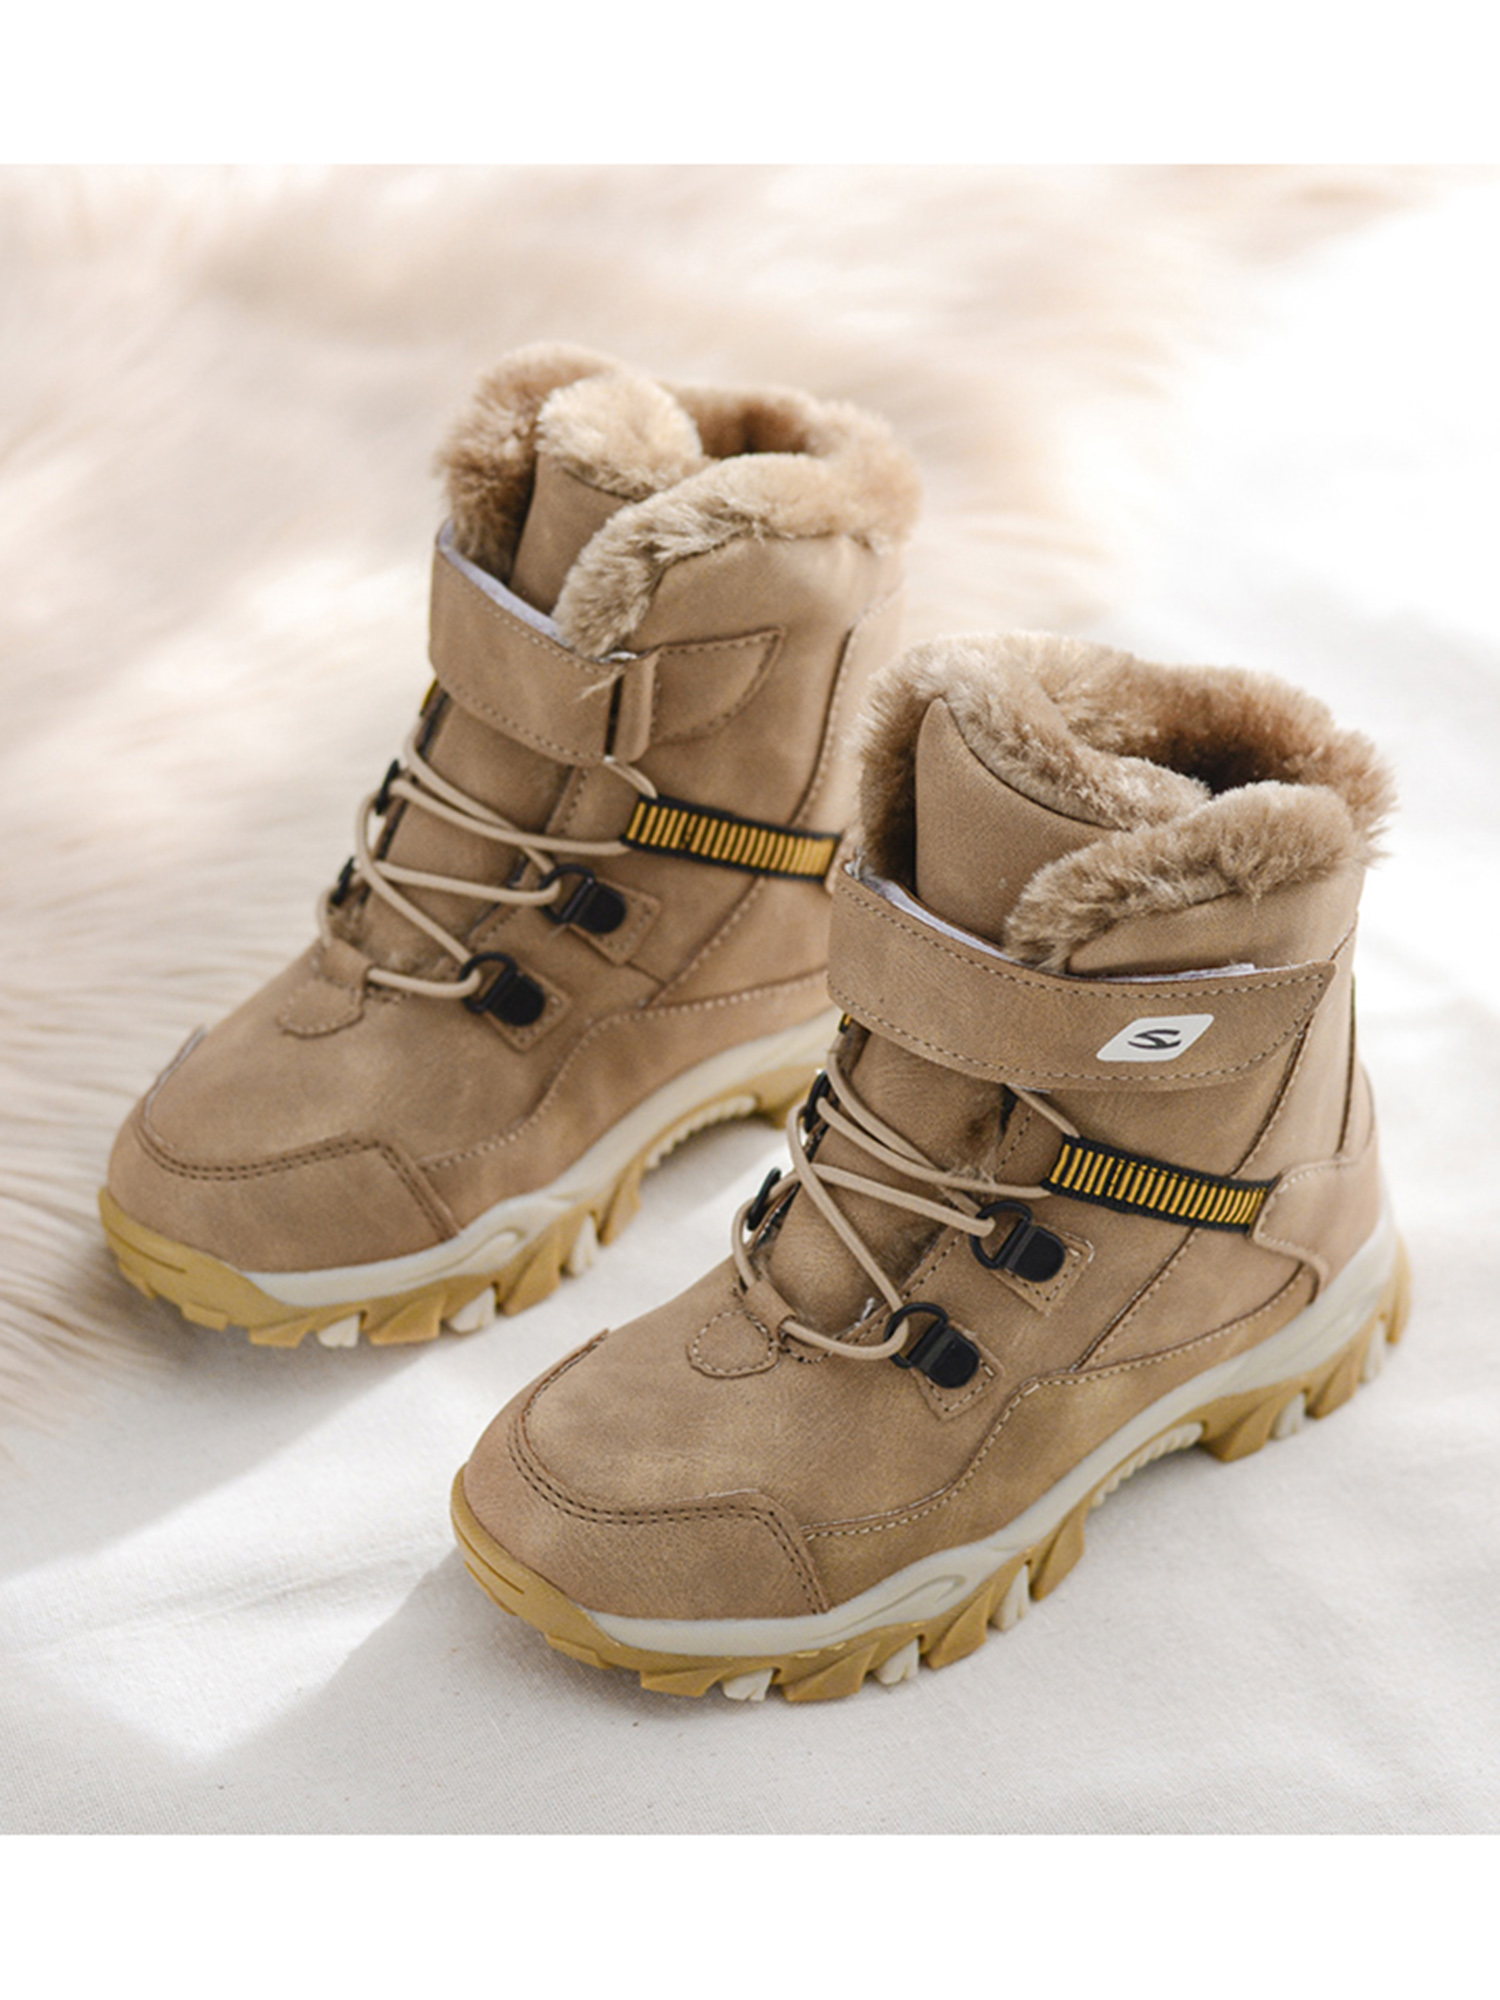 Boys Ankle Hiking Boots Girls Winter Snow Boot Waterproof Fur Lined Shoes Size